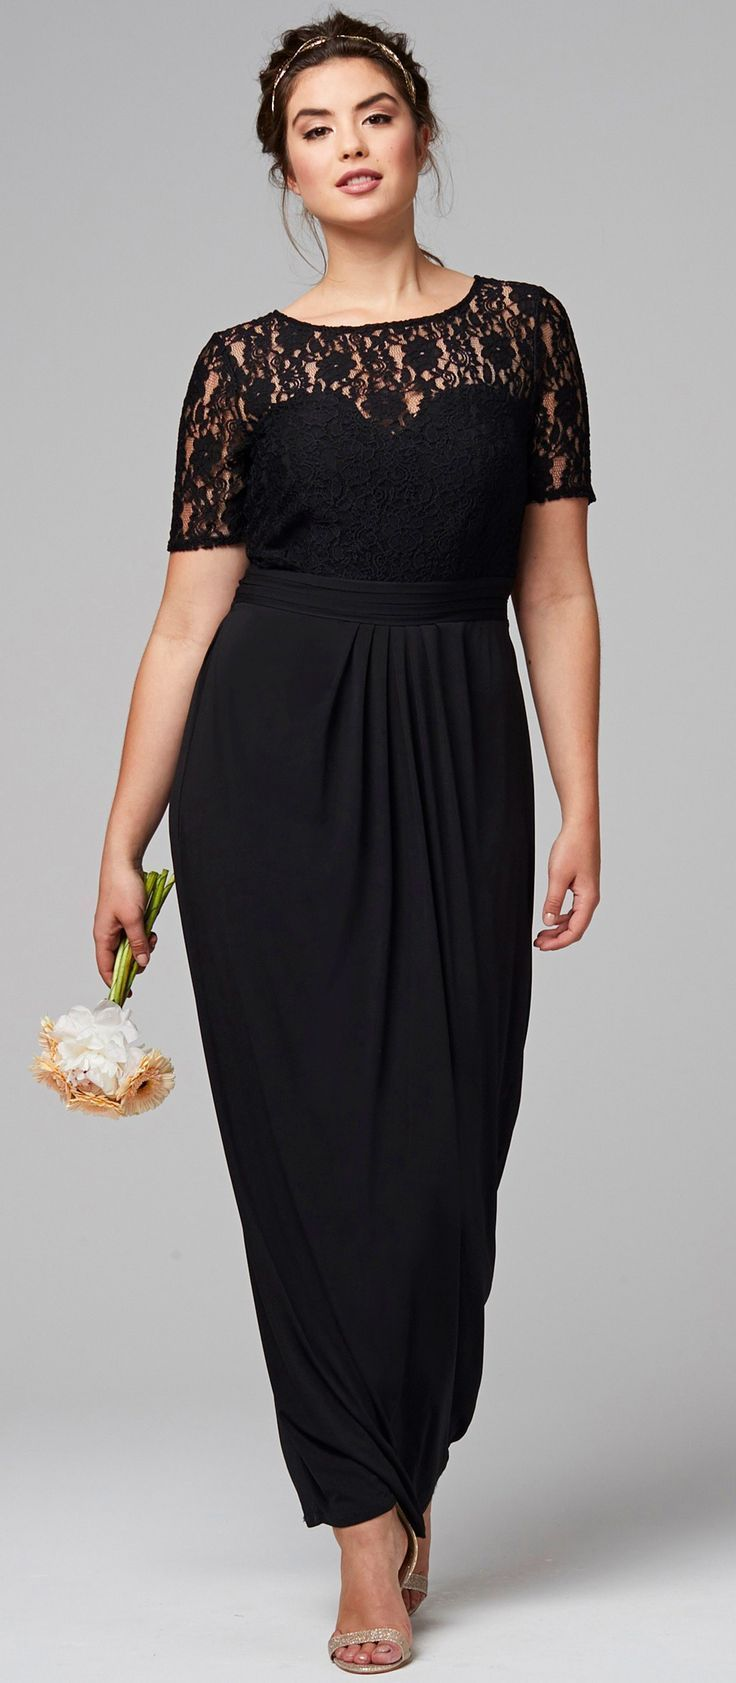 dresses for wedding guest 45 plus size wedding guest dresses with sleeves wedding 3722